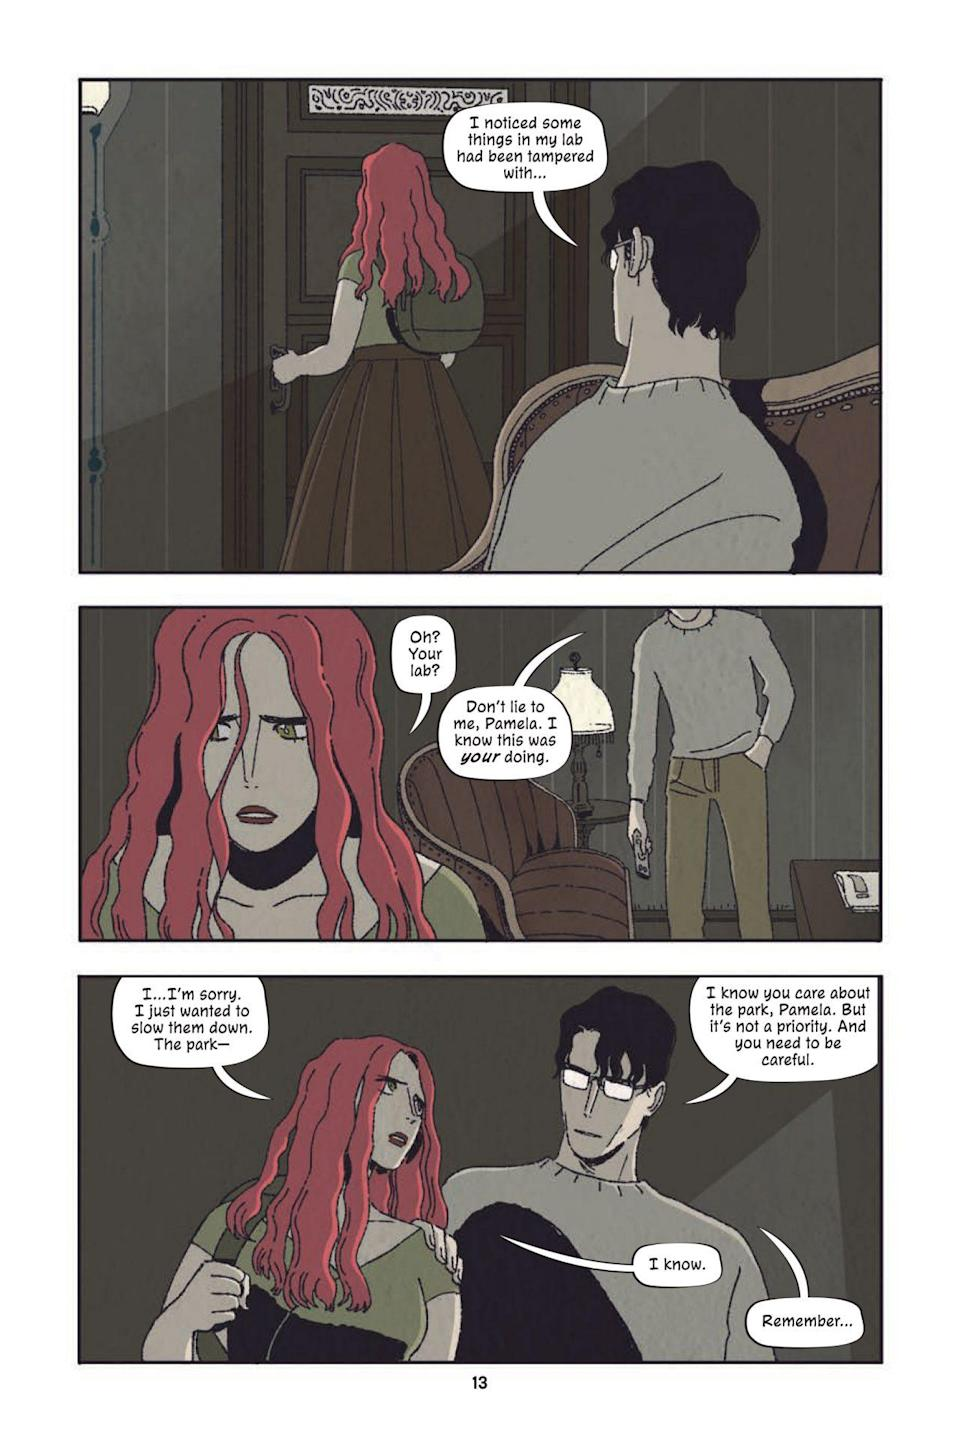 A page from Poison Ivy Thorns shows Ivy's dad being a creep